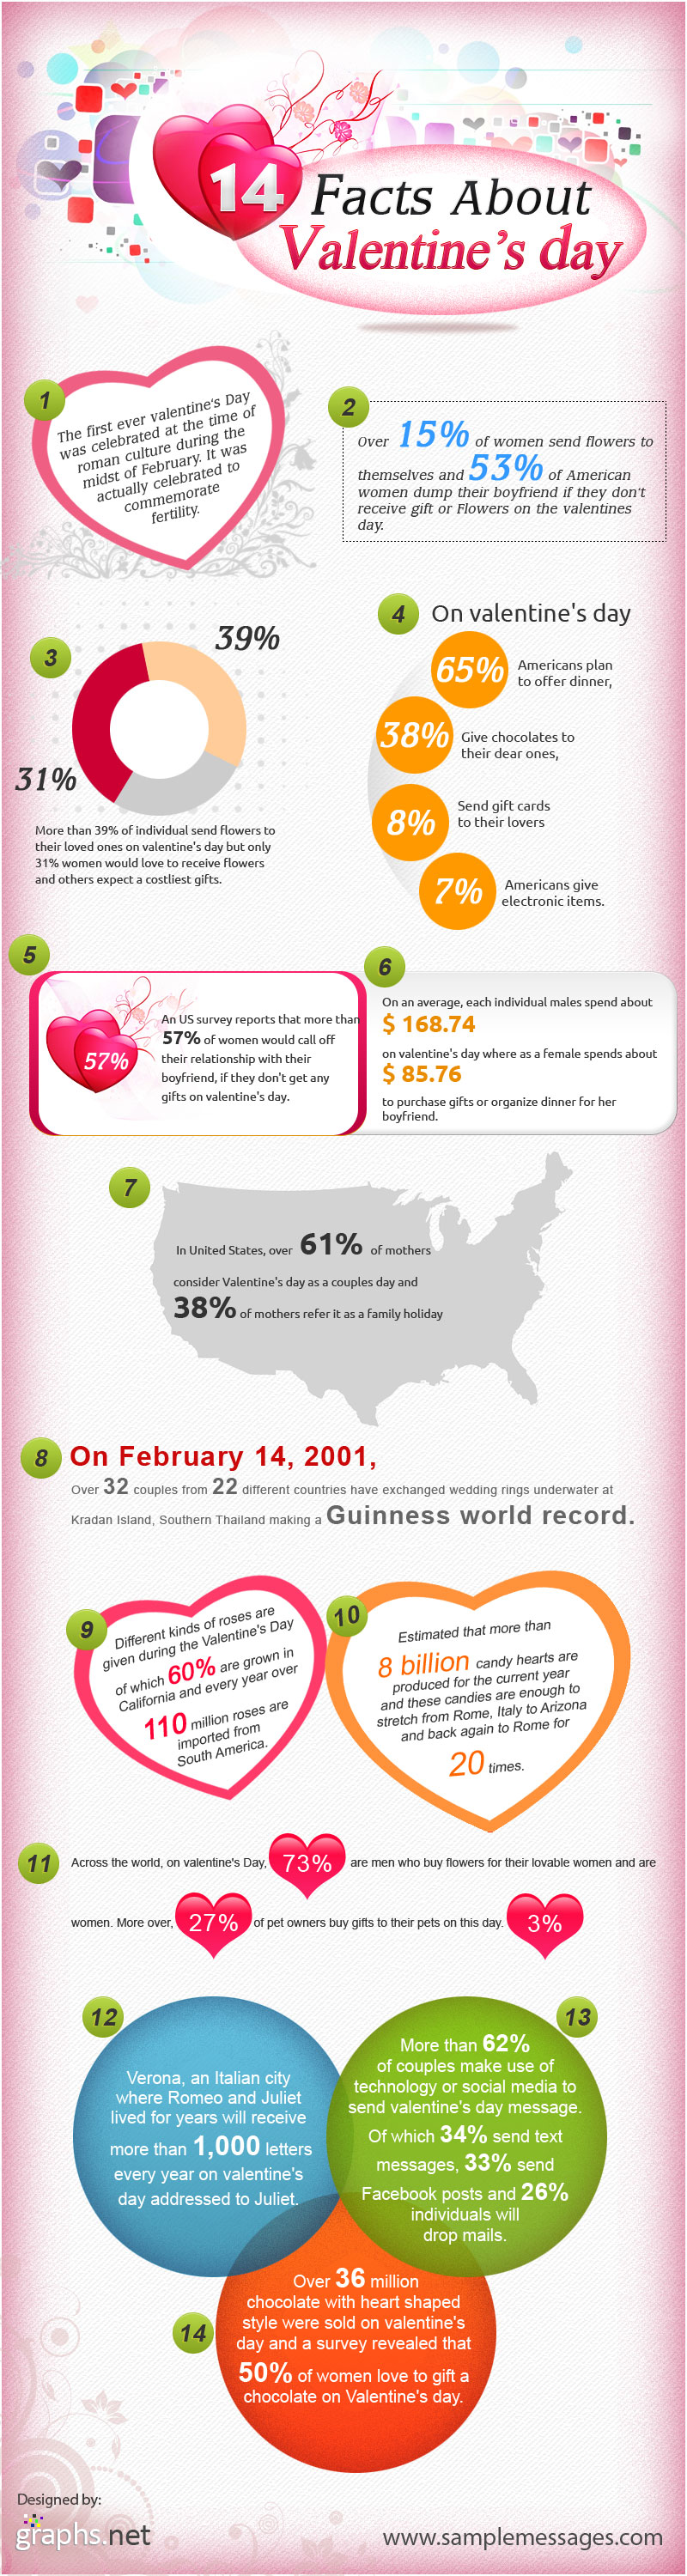 14 Facts about valentine's day